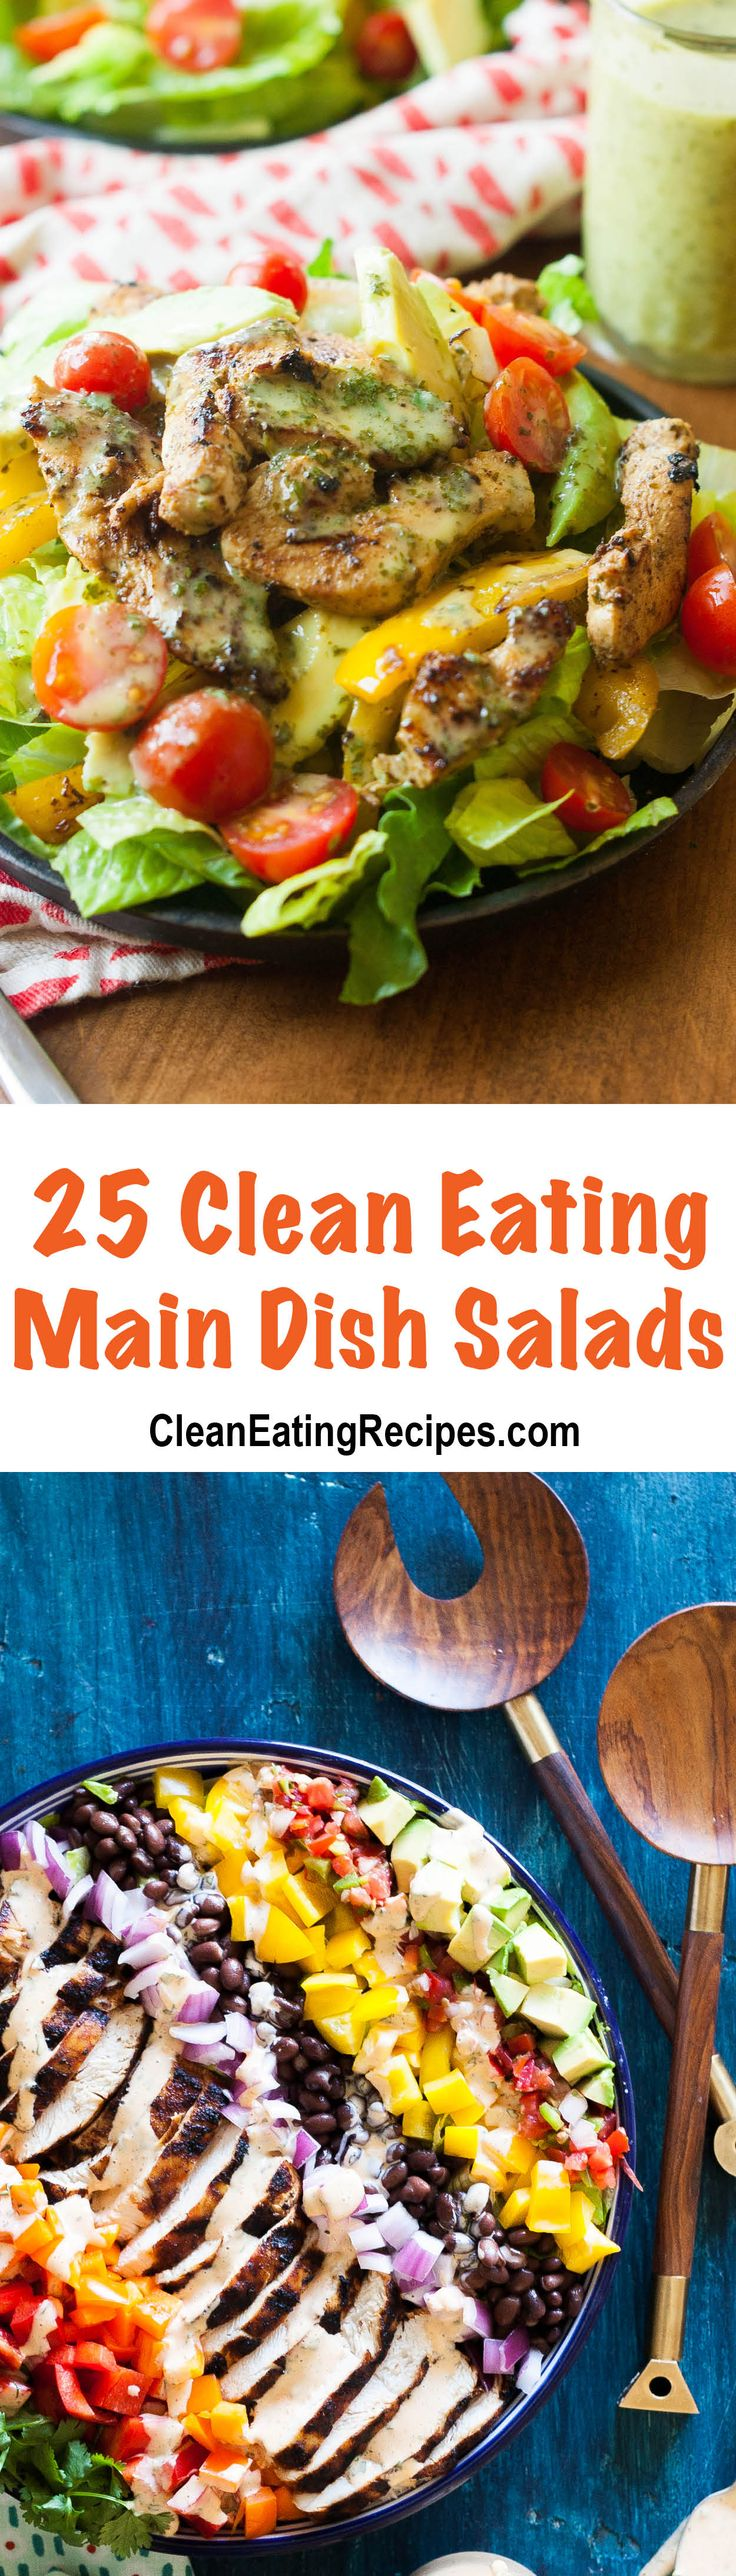 I eat a lot of salads.  Eating a lot of Clean Eating main dish salads is one of the tricks that helped me lose over 50 pounds. In order to lose weight eating large salads, you need to focus on Clean Eating salad recipes that are high in protein and don't include dressing that is …